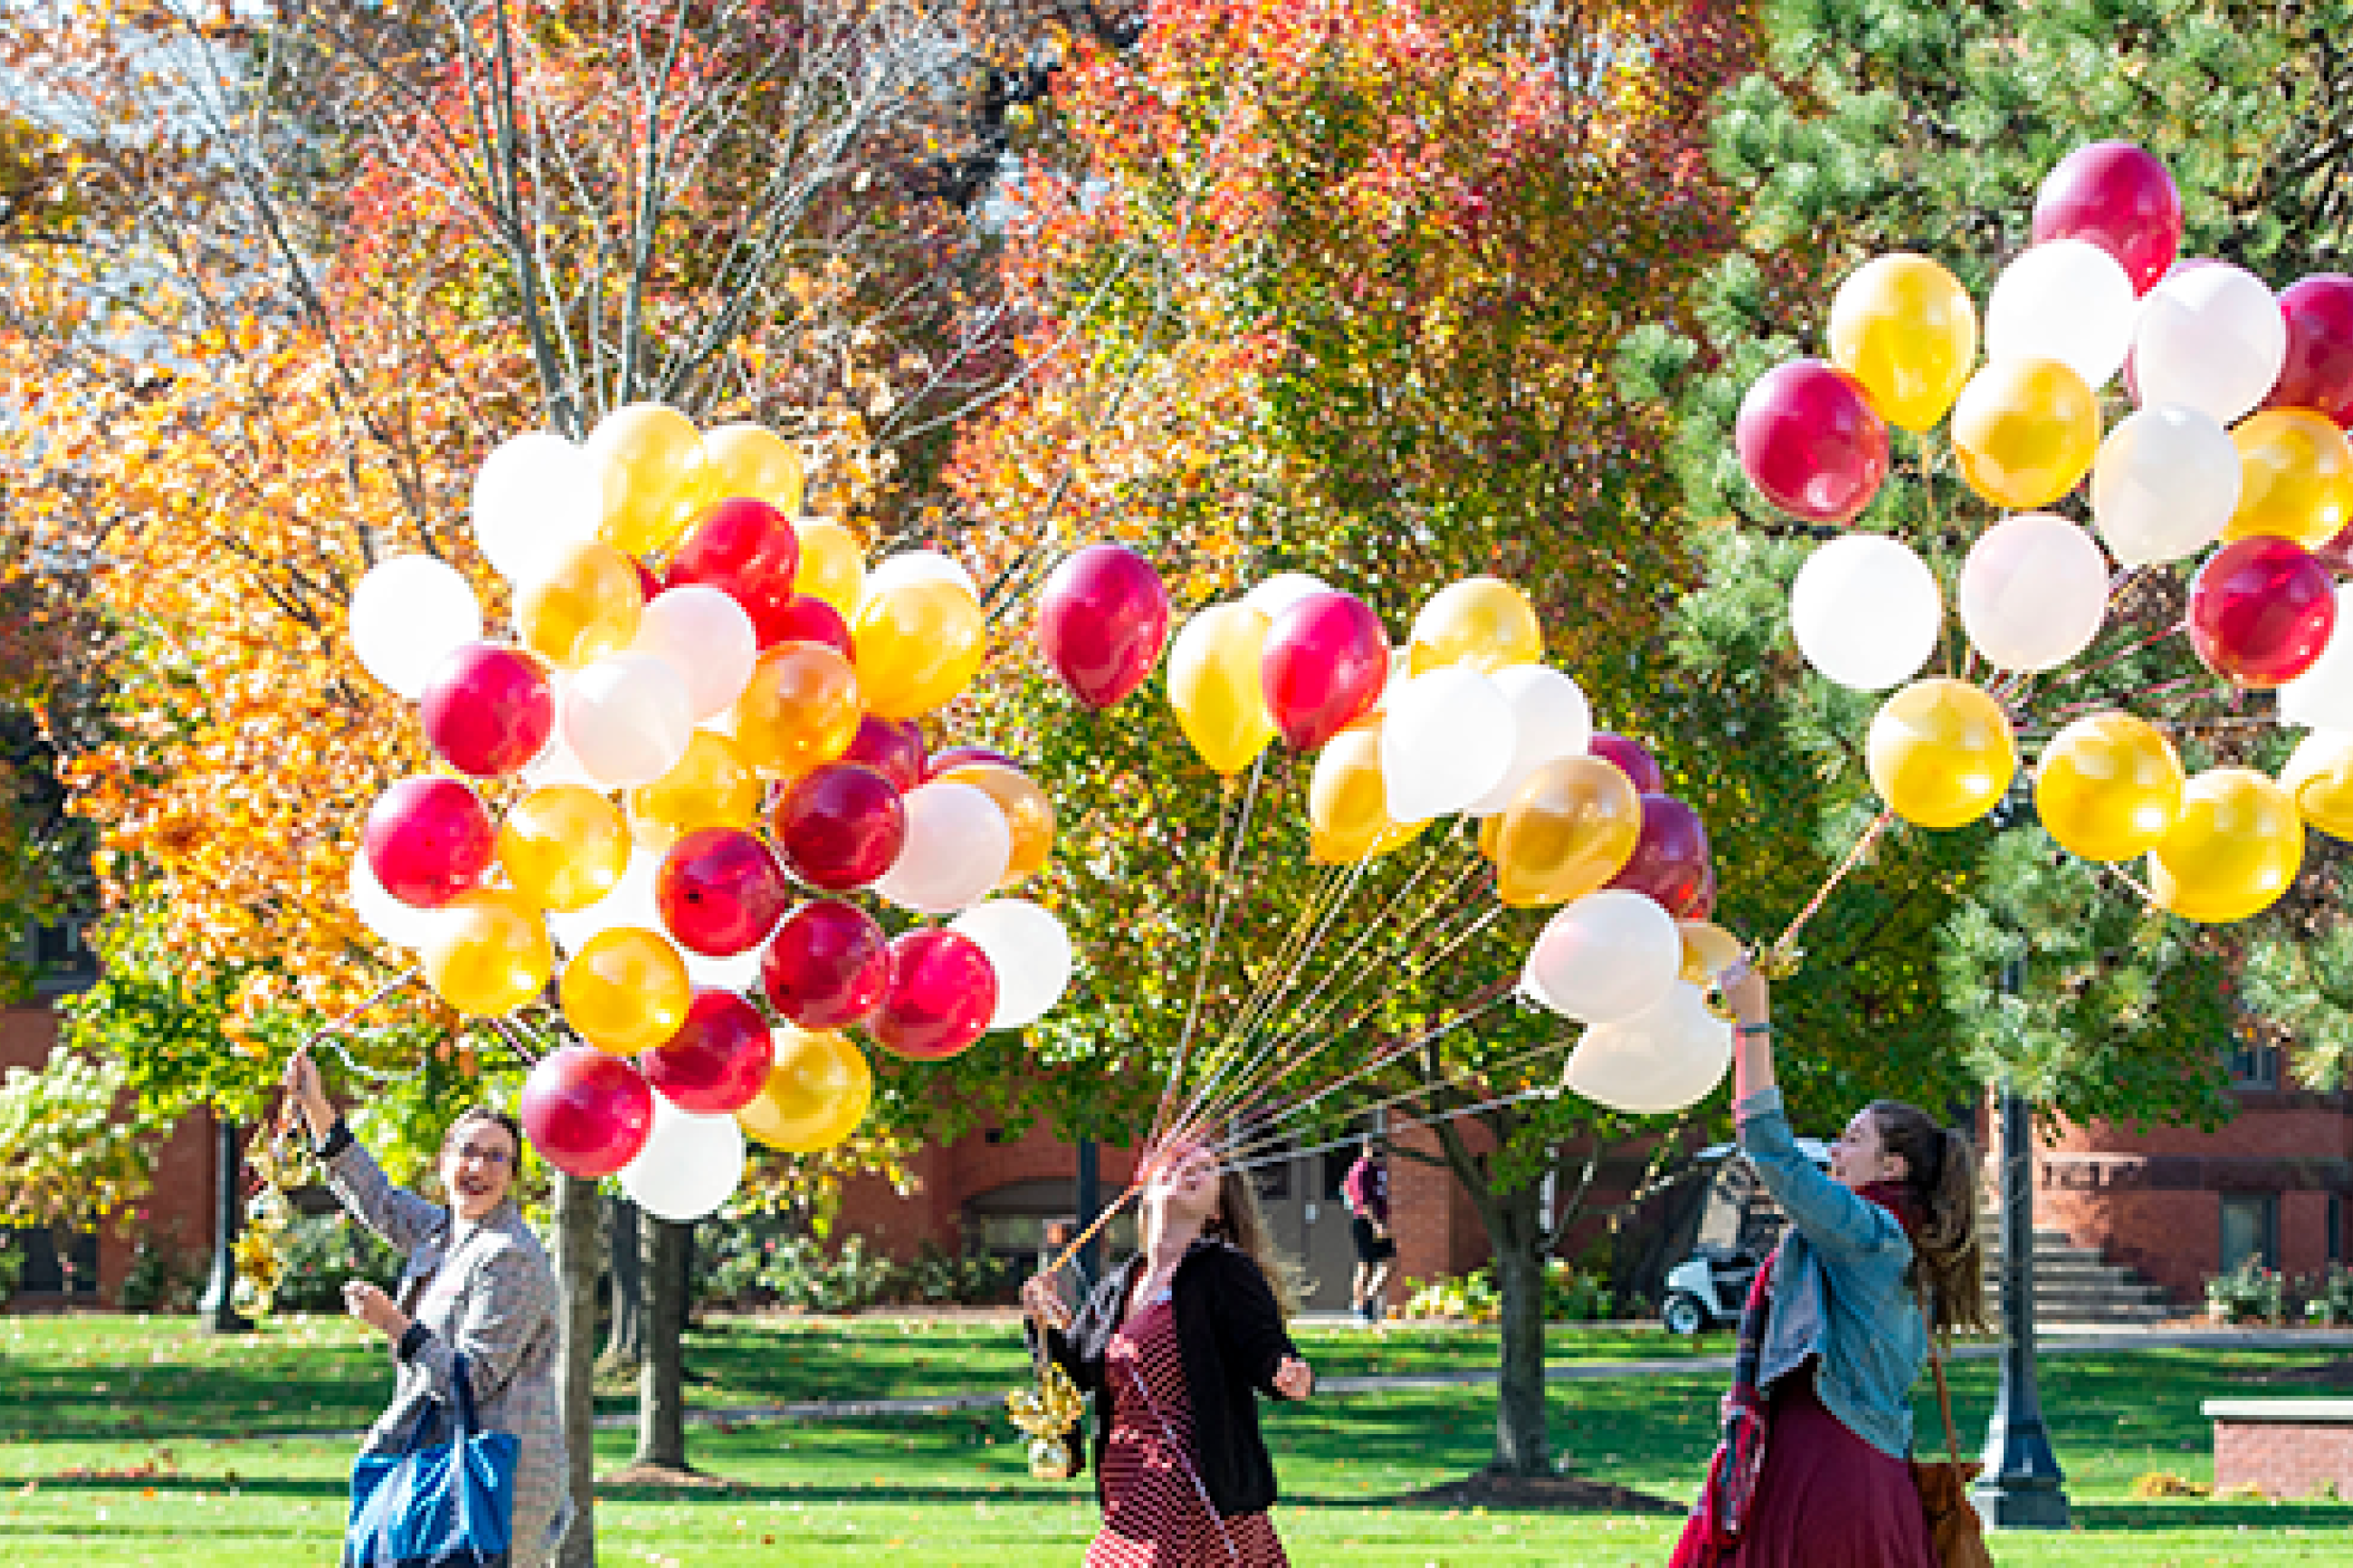 walking with balloons on campus